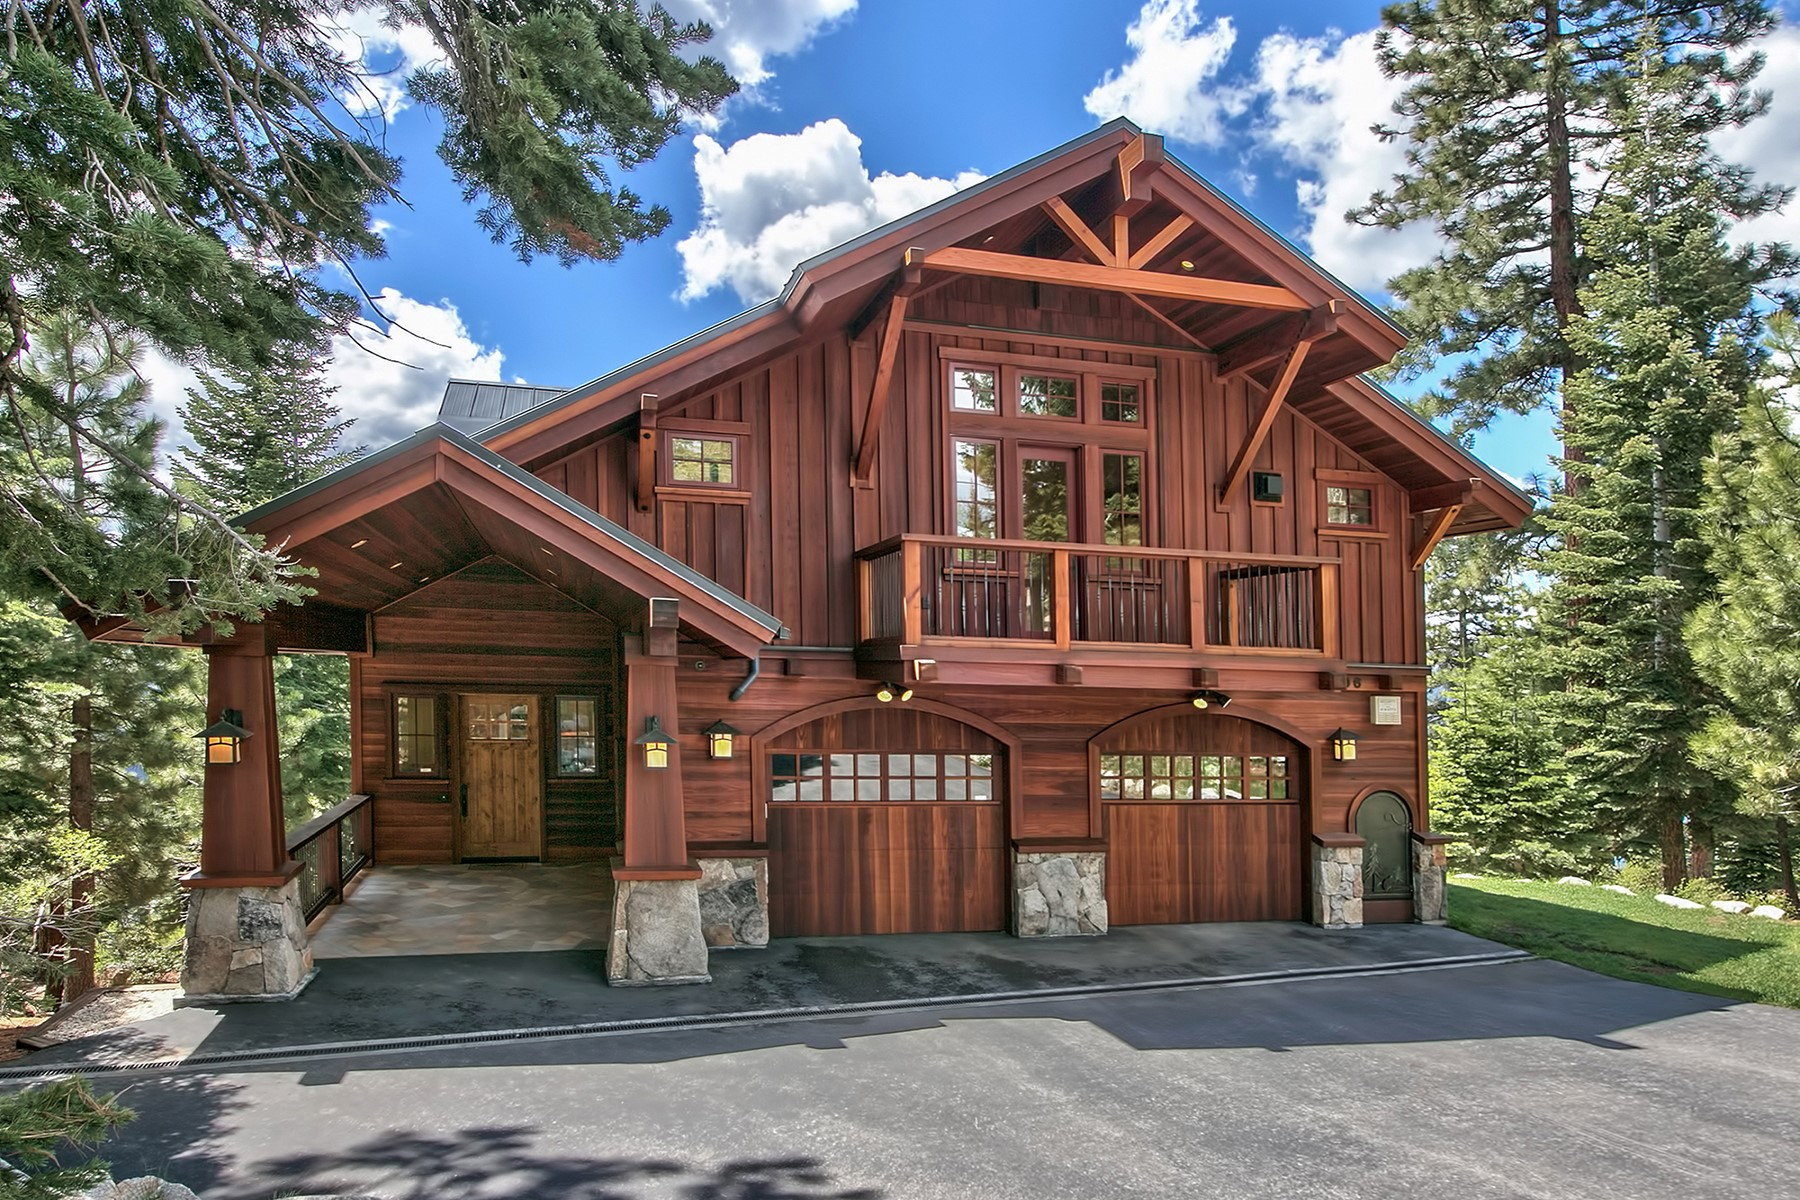 Single Family Home for Sale at 12096 Skislope Way Tahoe Donner, Truckee, California 96161 United States